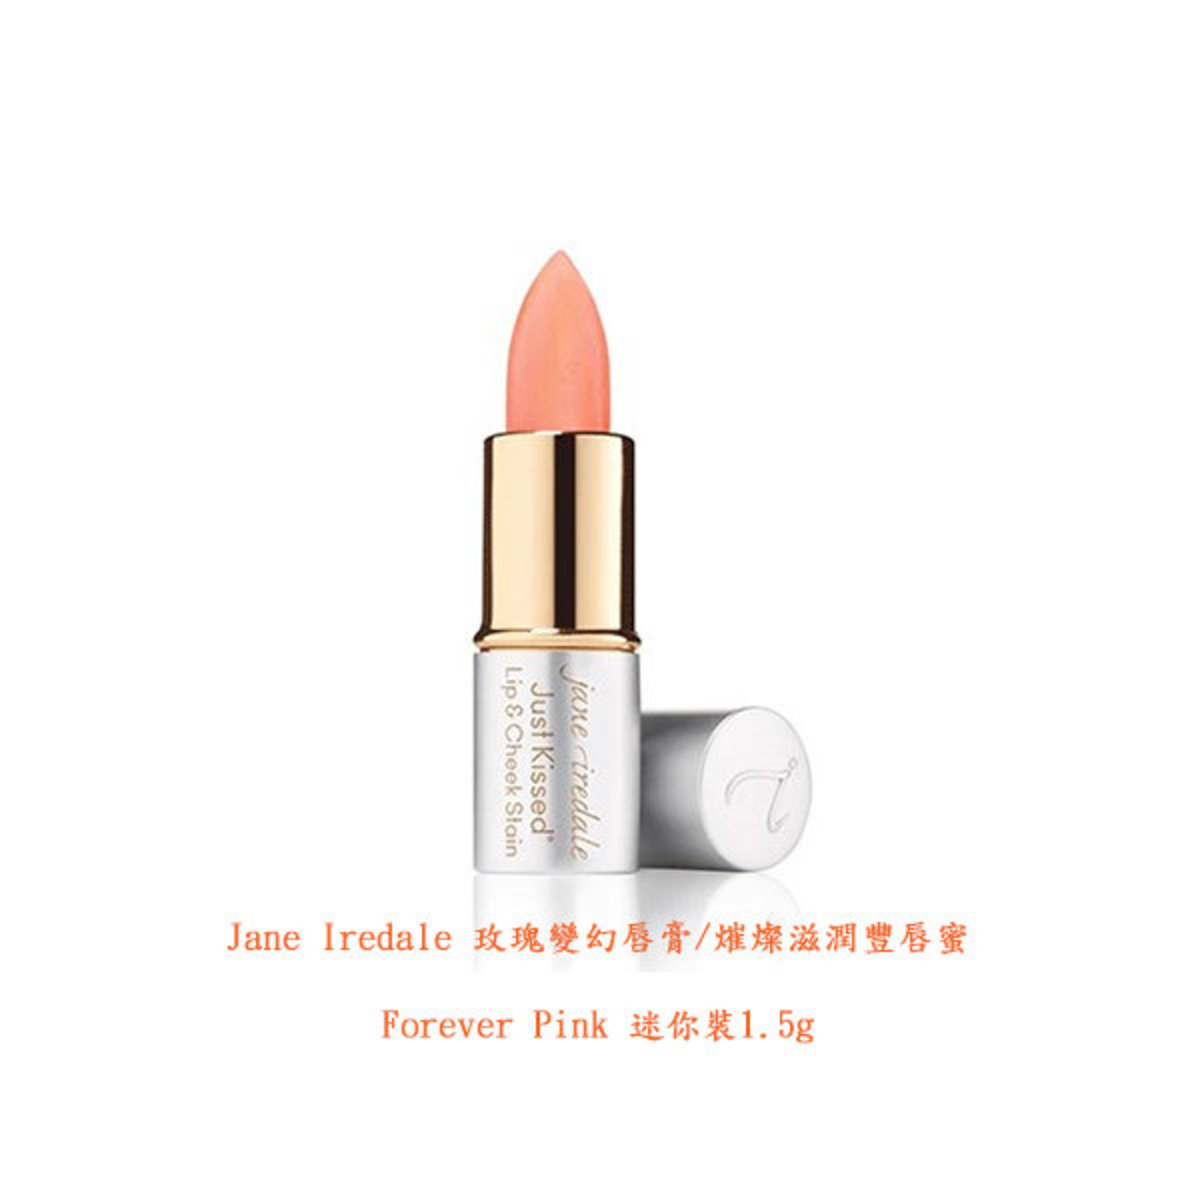 Jane Iredale Forever Pink Just Kiss Mini 1.5g